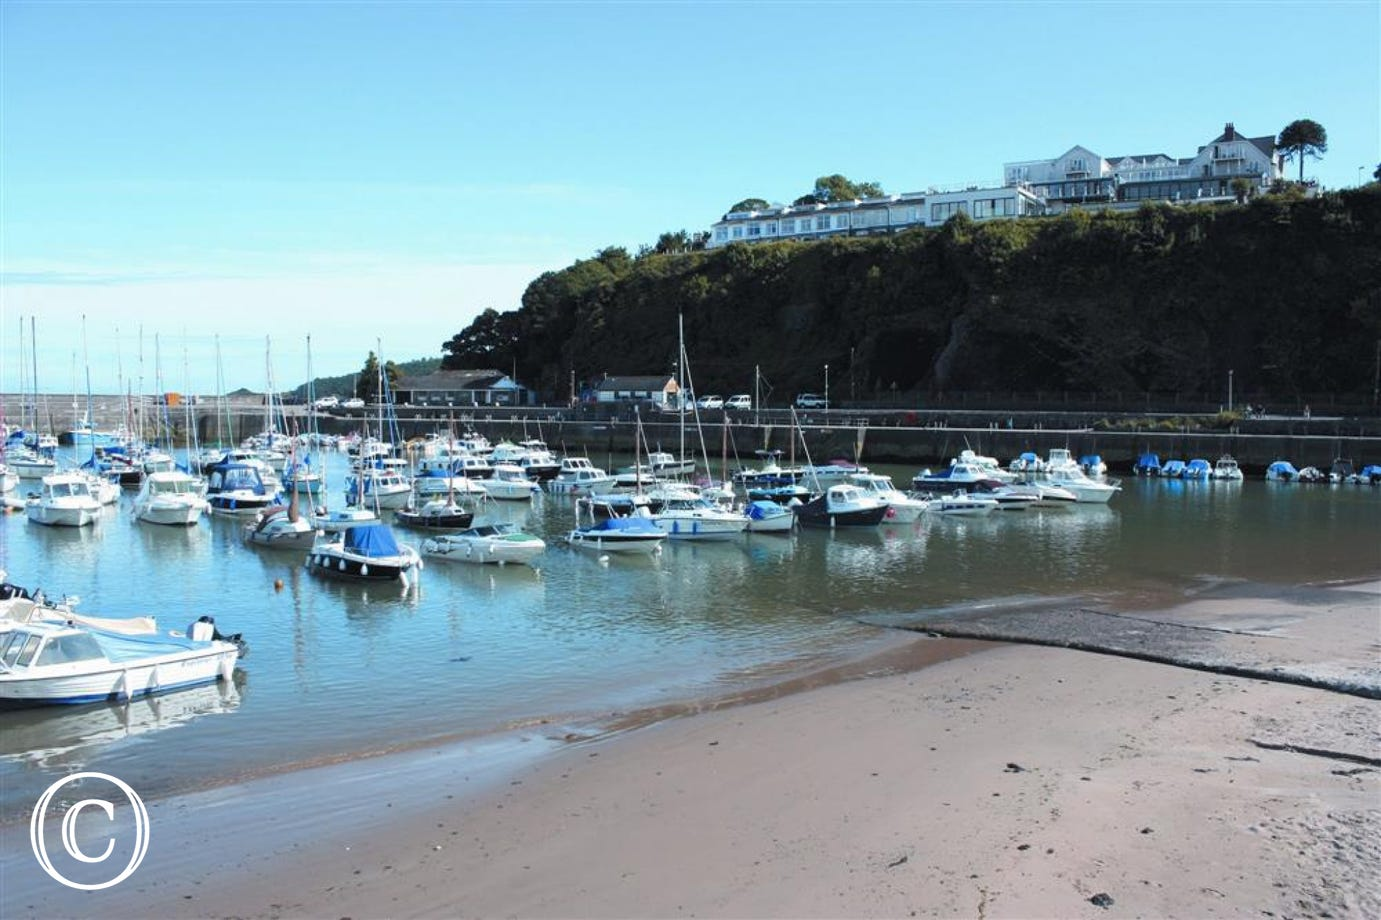 Saundersfoot harbour boats photo